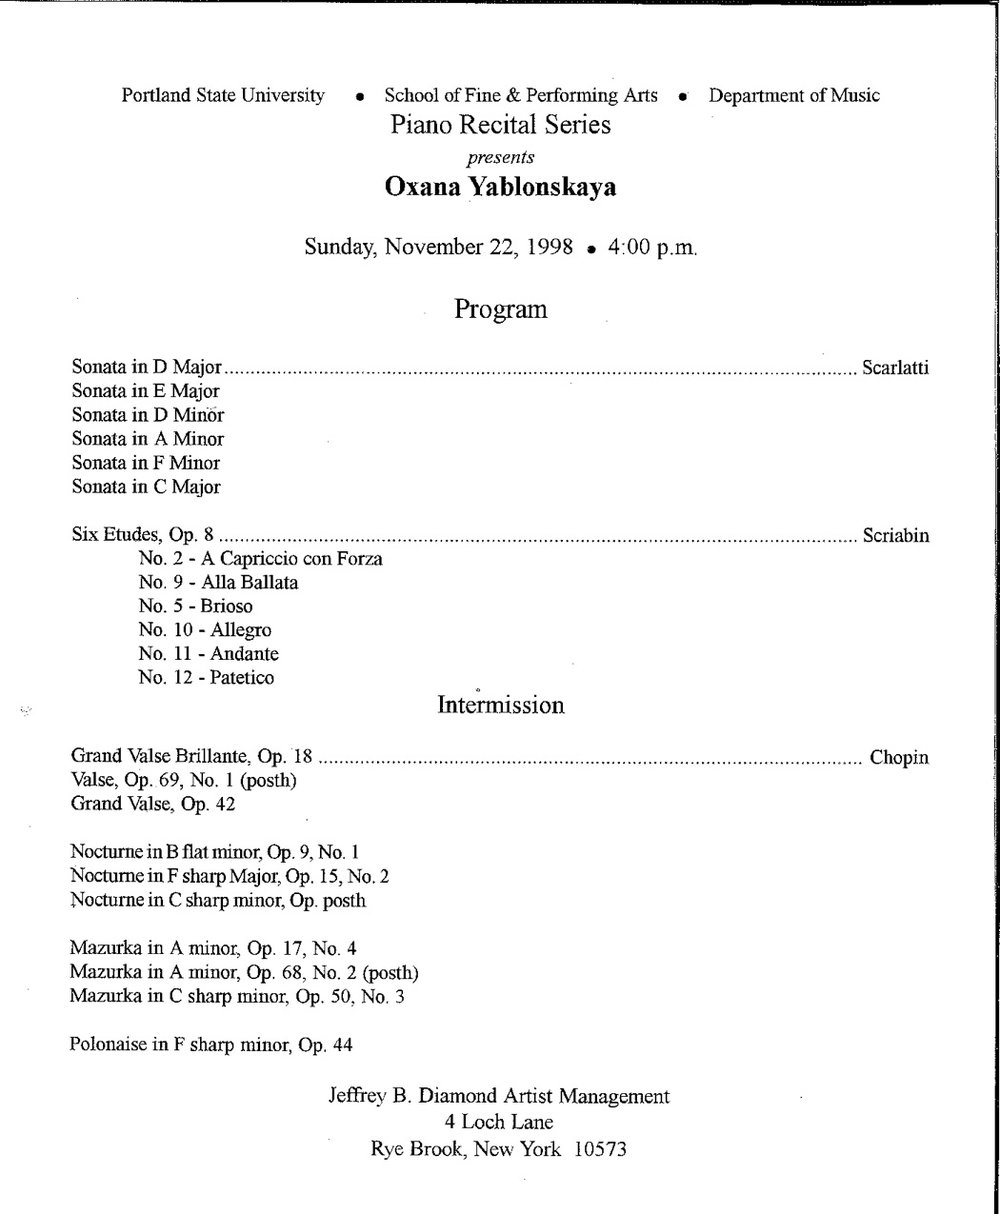 Yablonskaya98-99_Program2.jpg